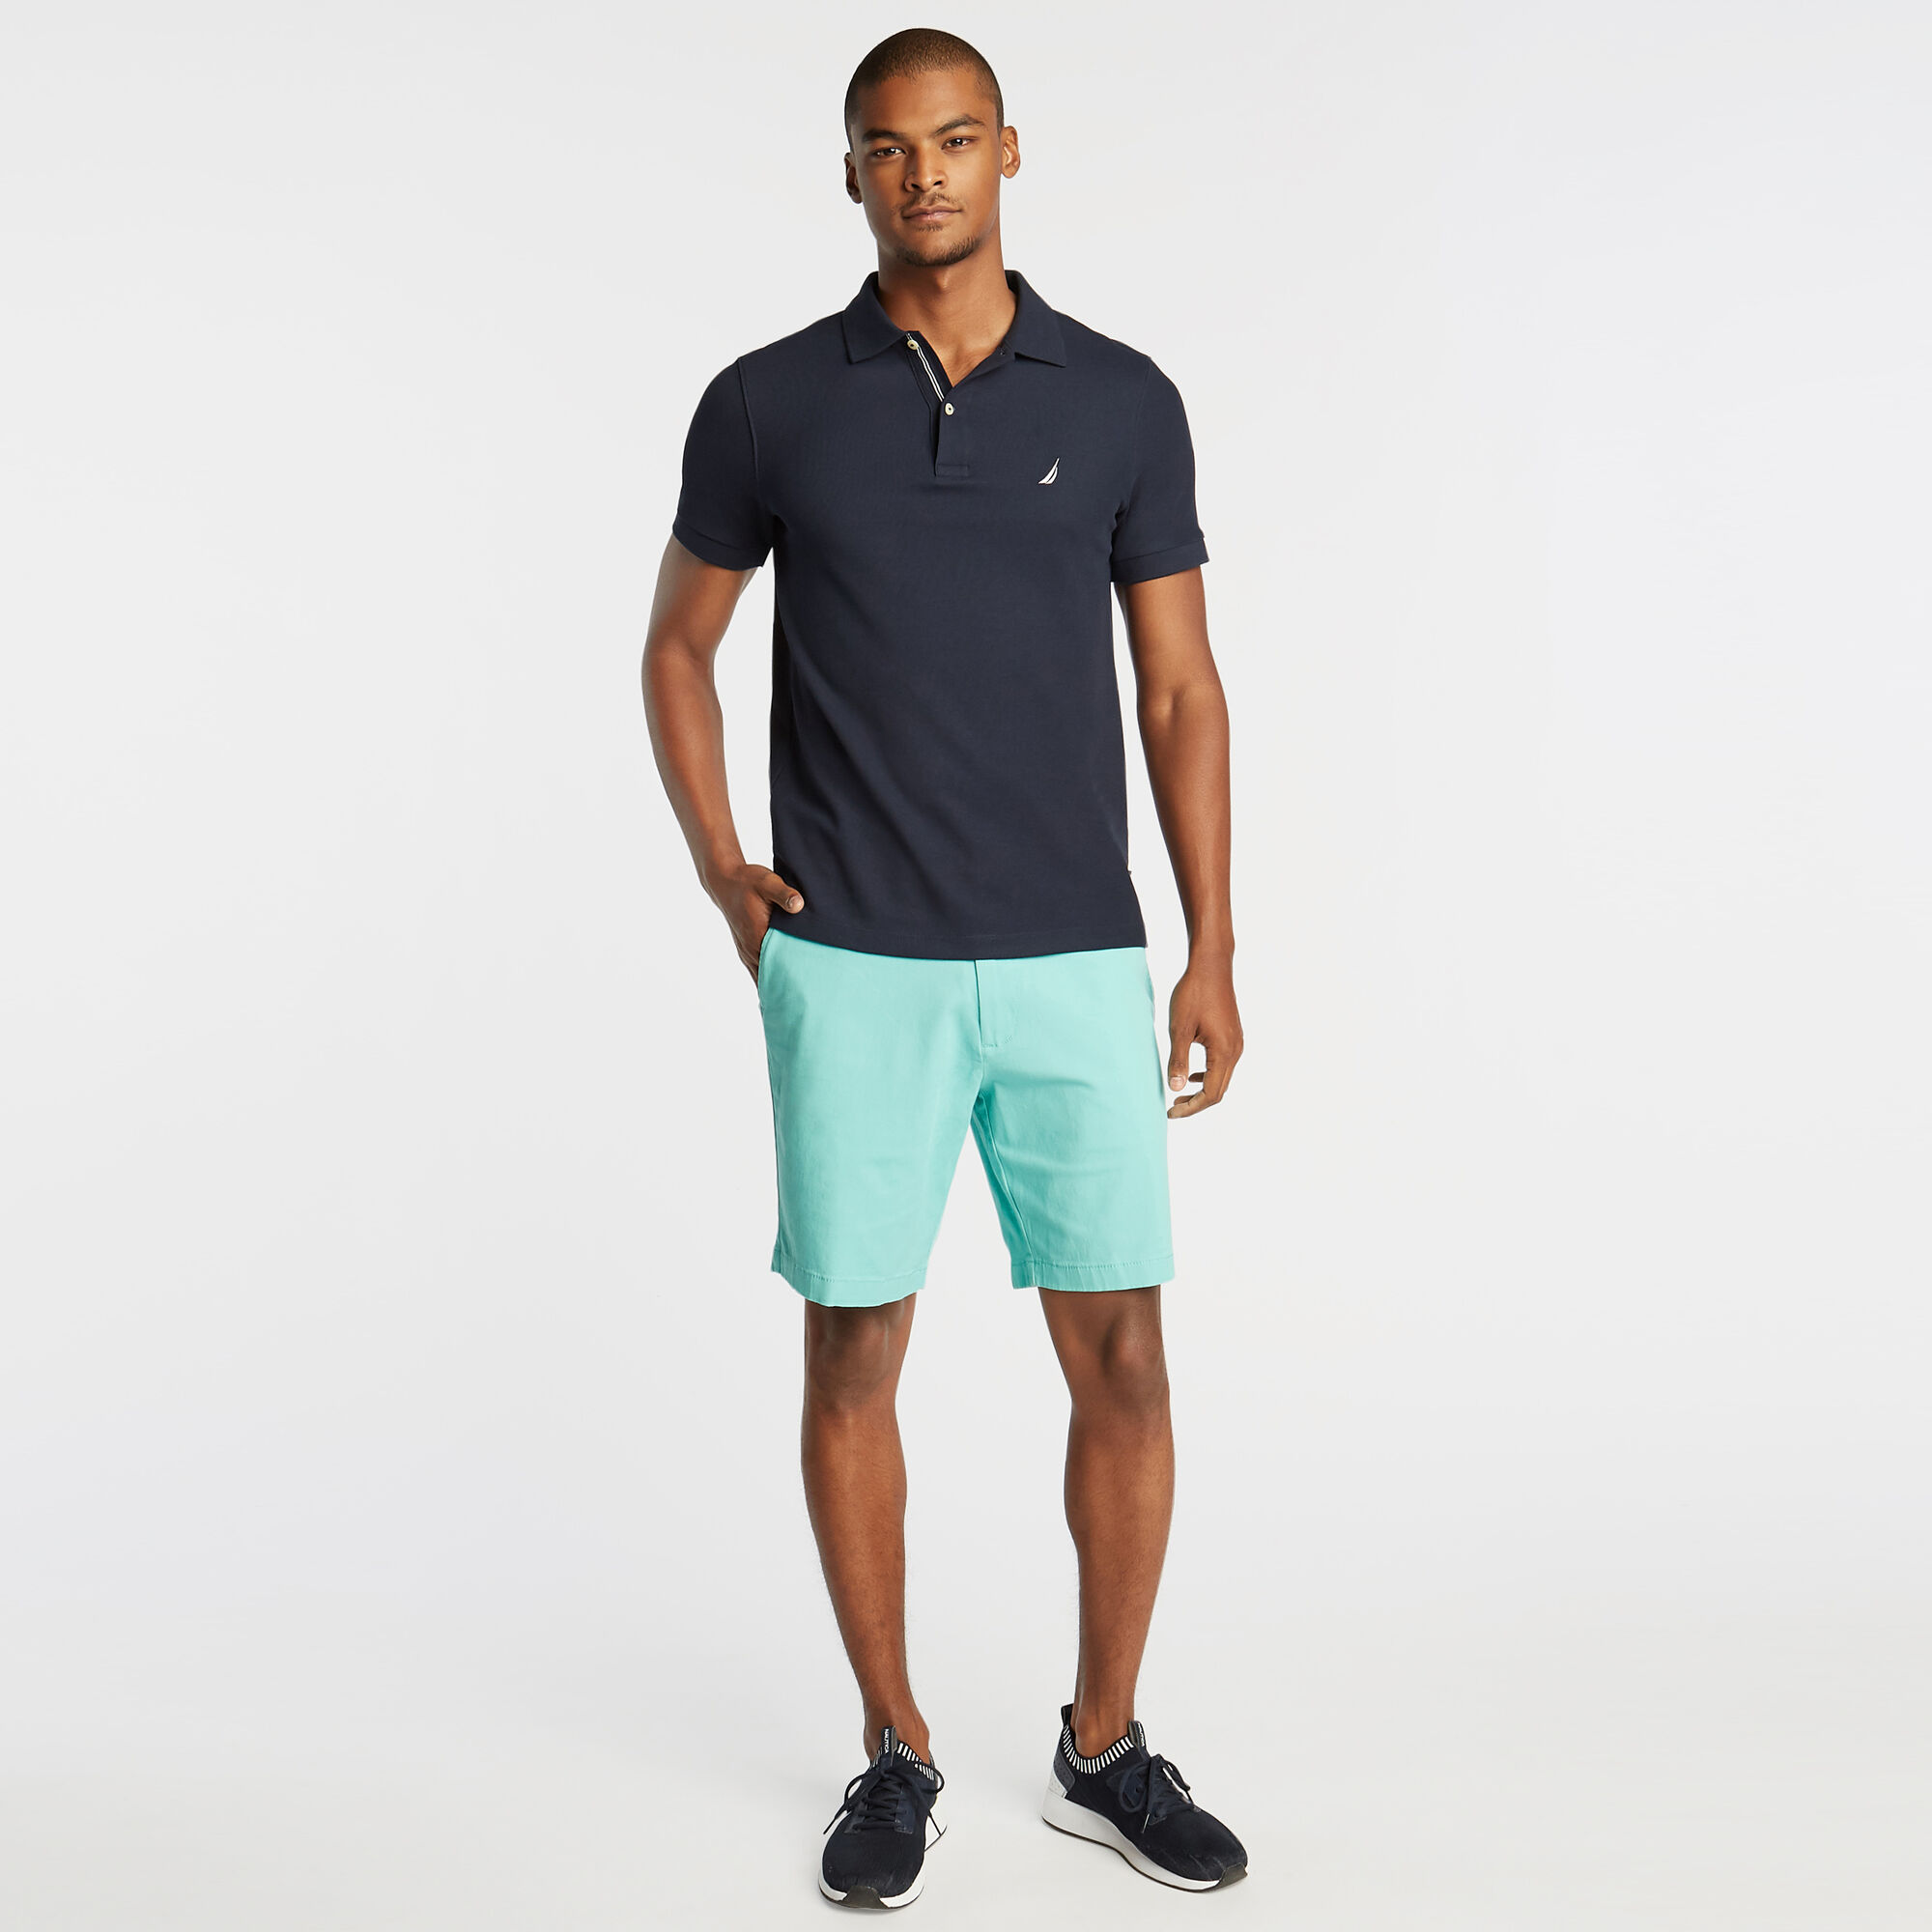 Nautica-Mens-8-5-034-Classic-Fit-Deck-Short-With-Stretch thumbnail 41